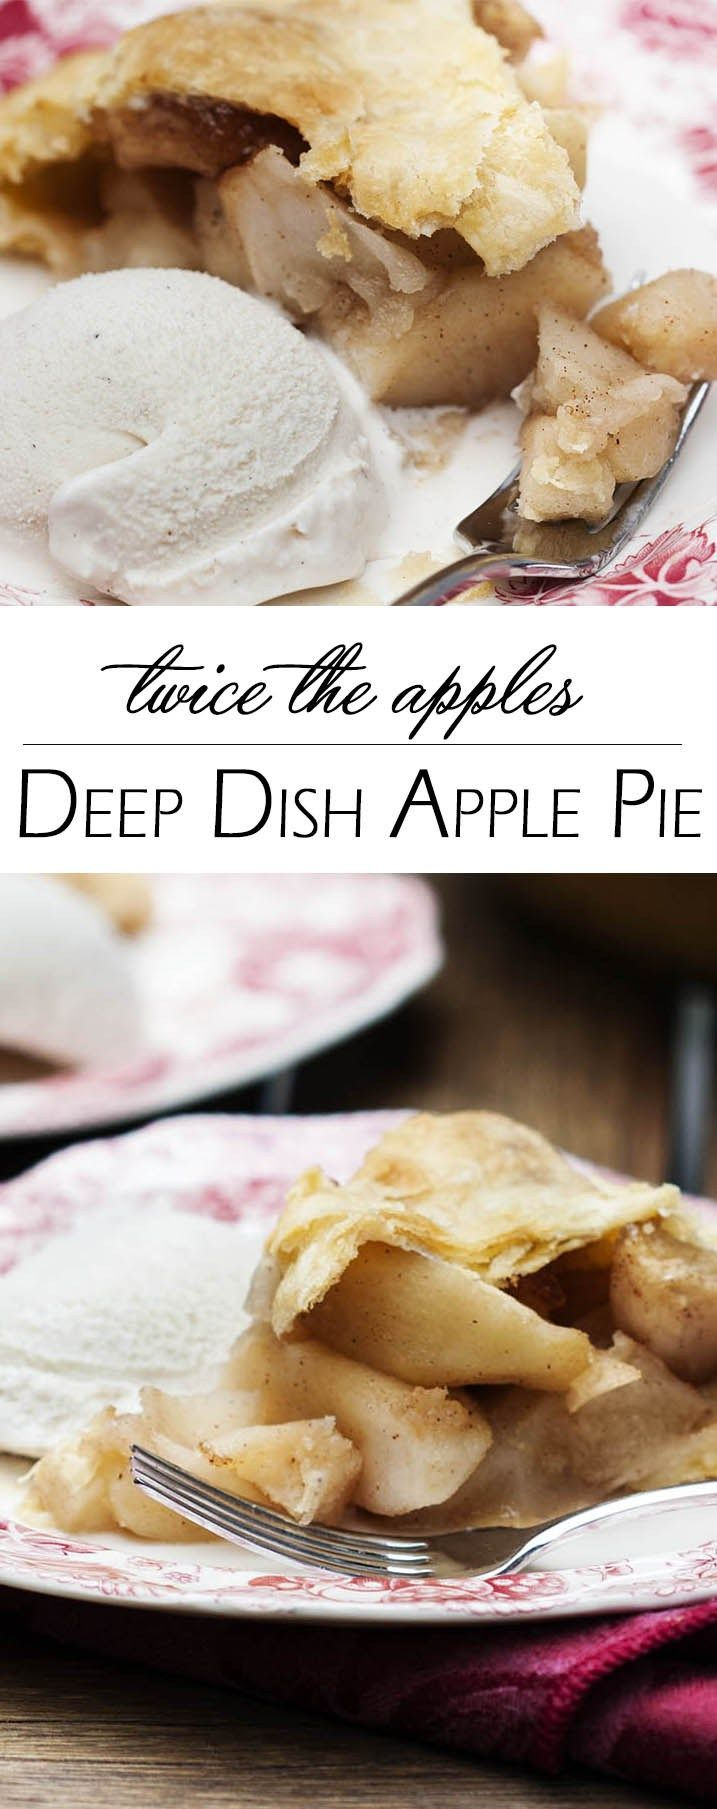 This deep dish apple pie packs twice the apples and twice the flavor into every slice of pie in this twist on the classic recipe. Excellent for Thanksgiving!   http://justalittlebitofbacon.com